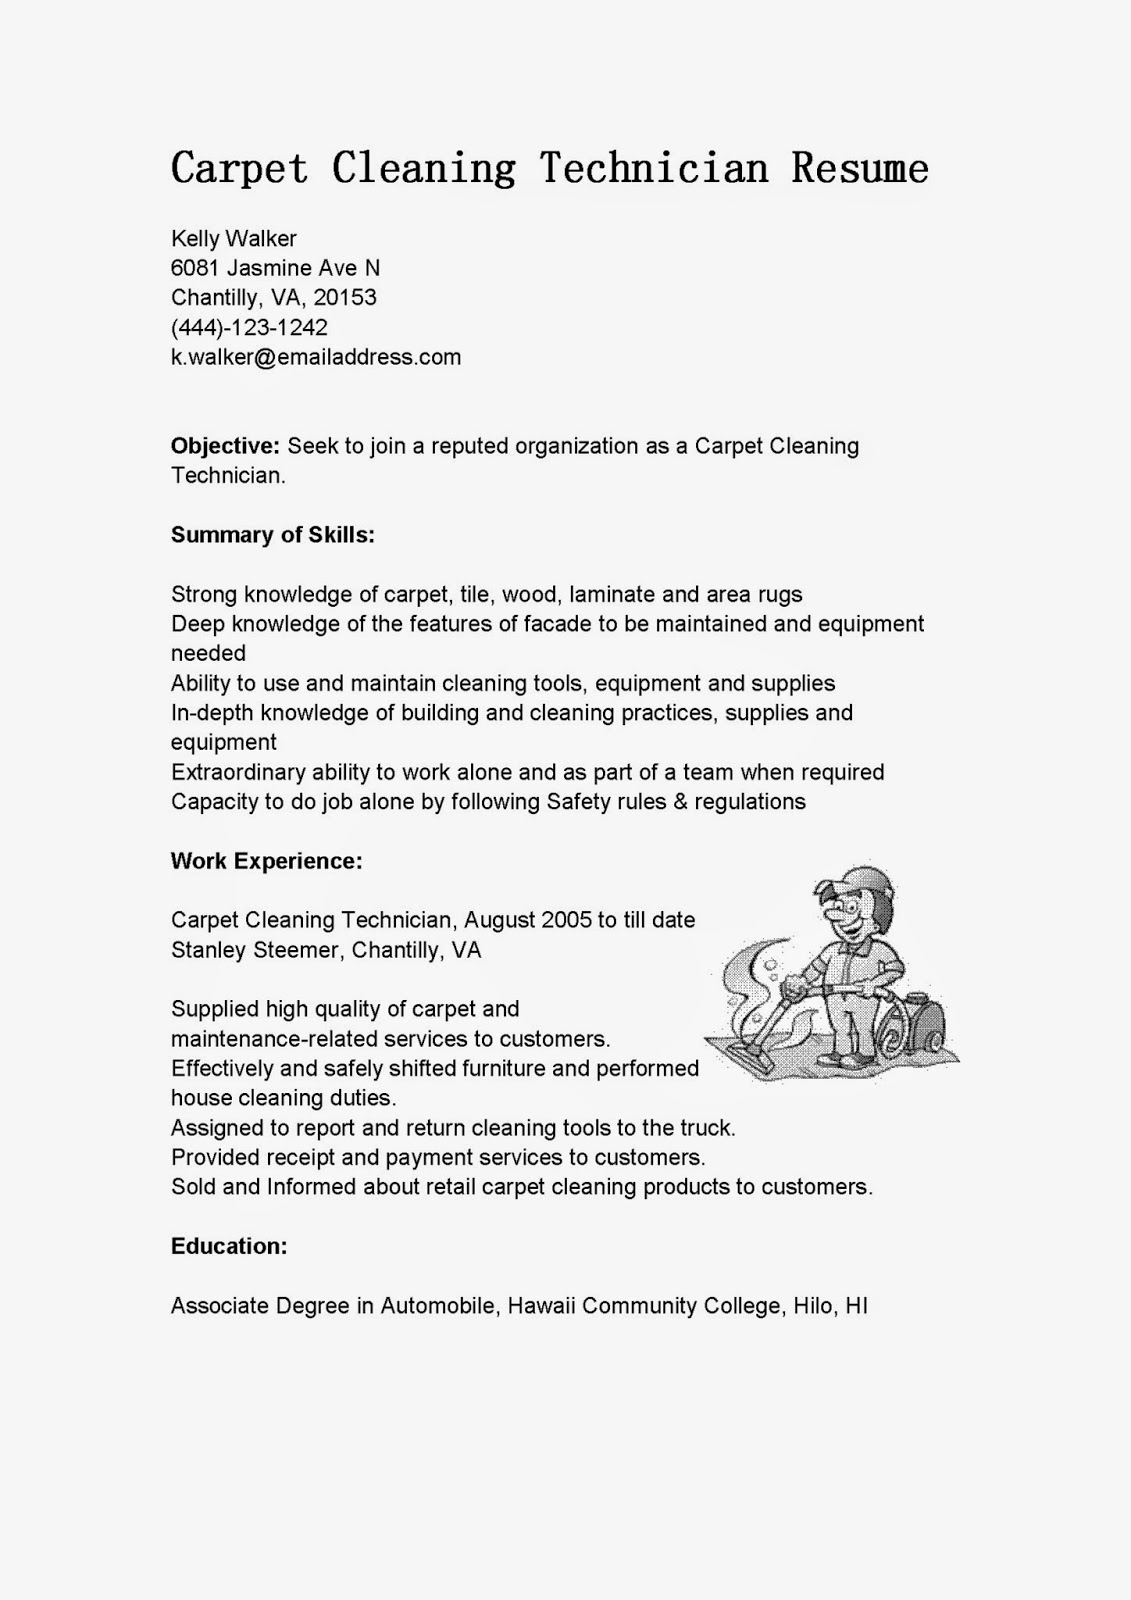 automotive technician cover letter gallery cover letter ideas. Resume Example. Resume CV Cover Letter